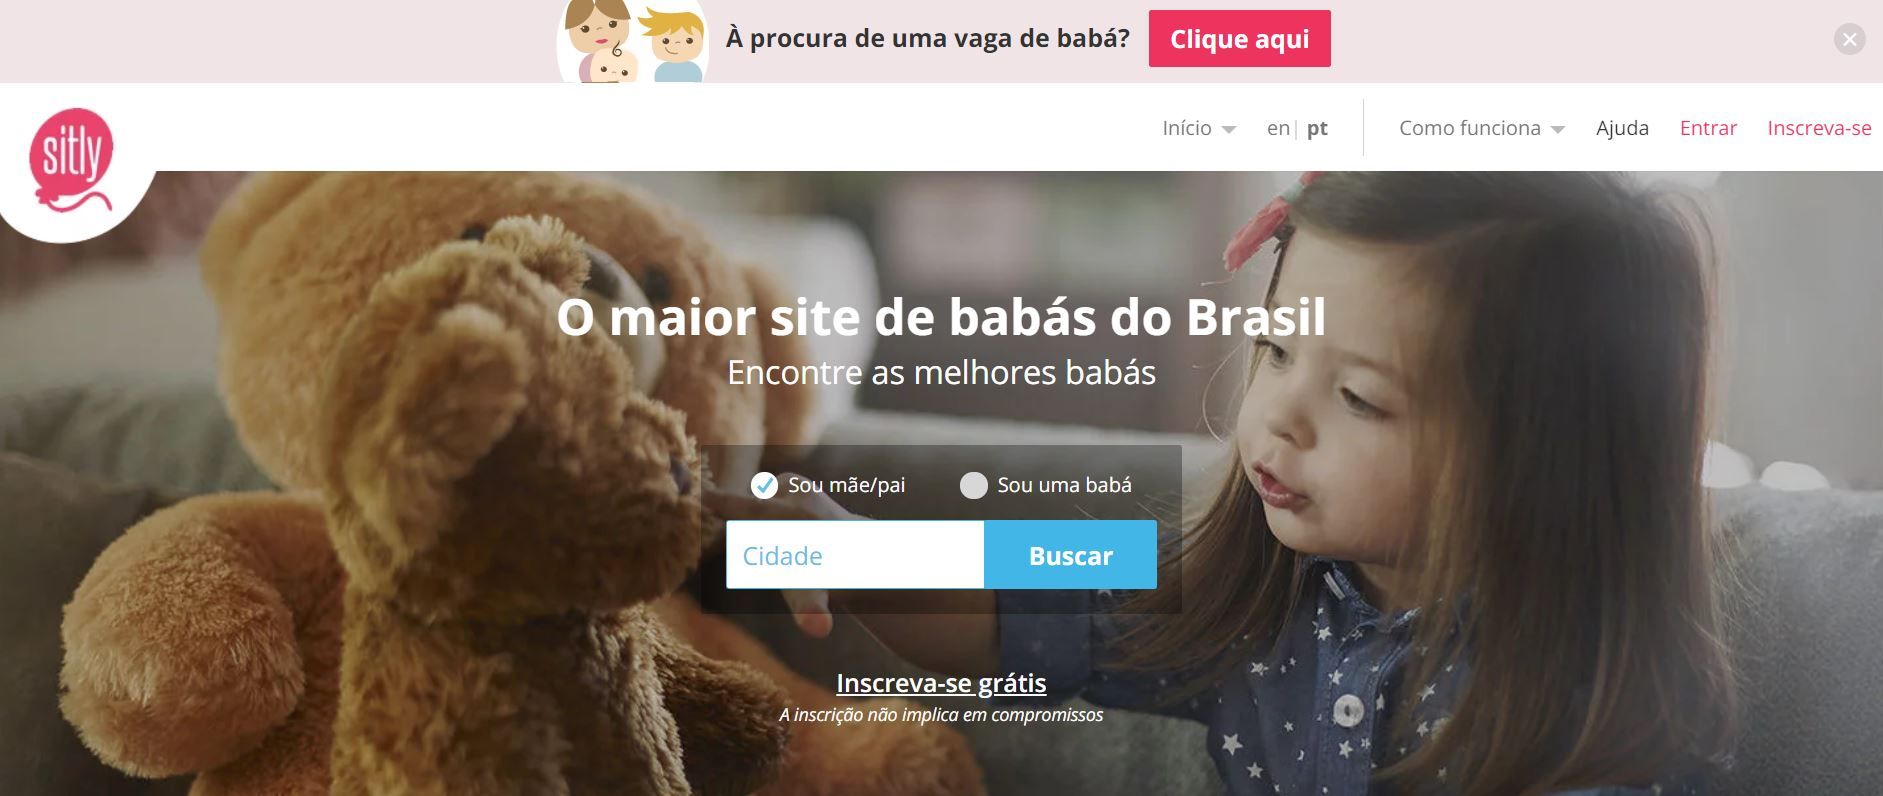 site para encontrar babá sitly